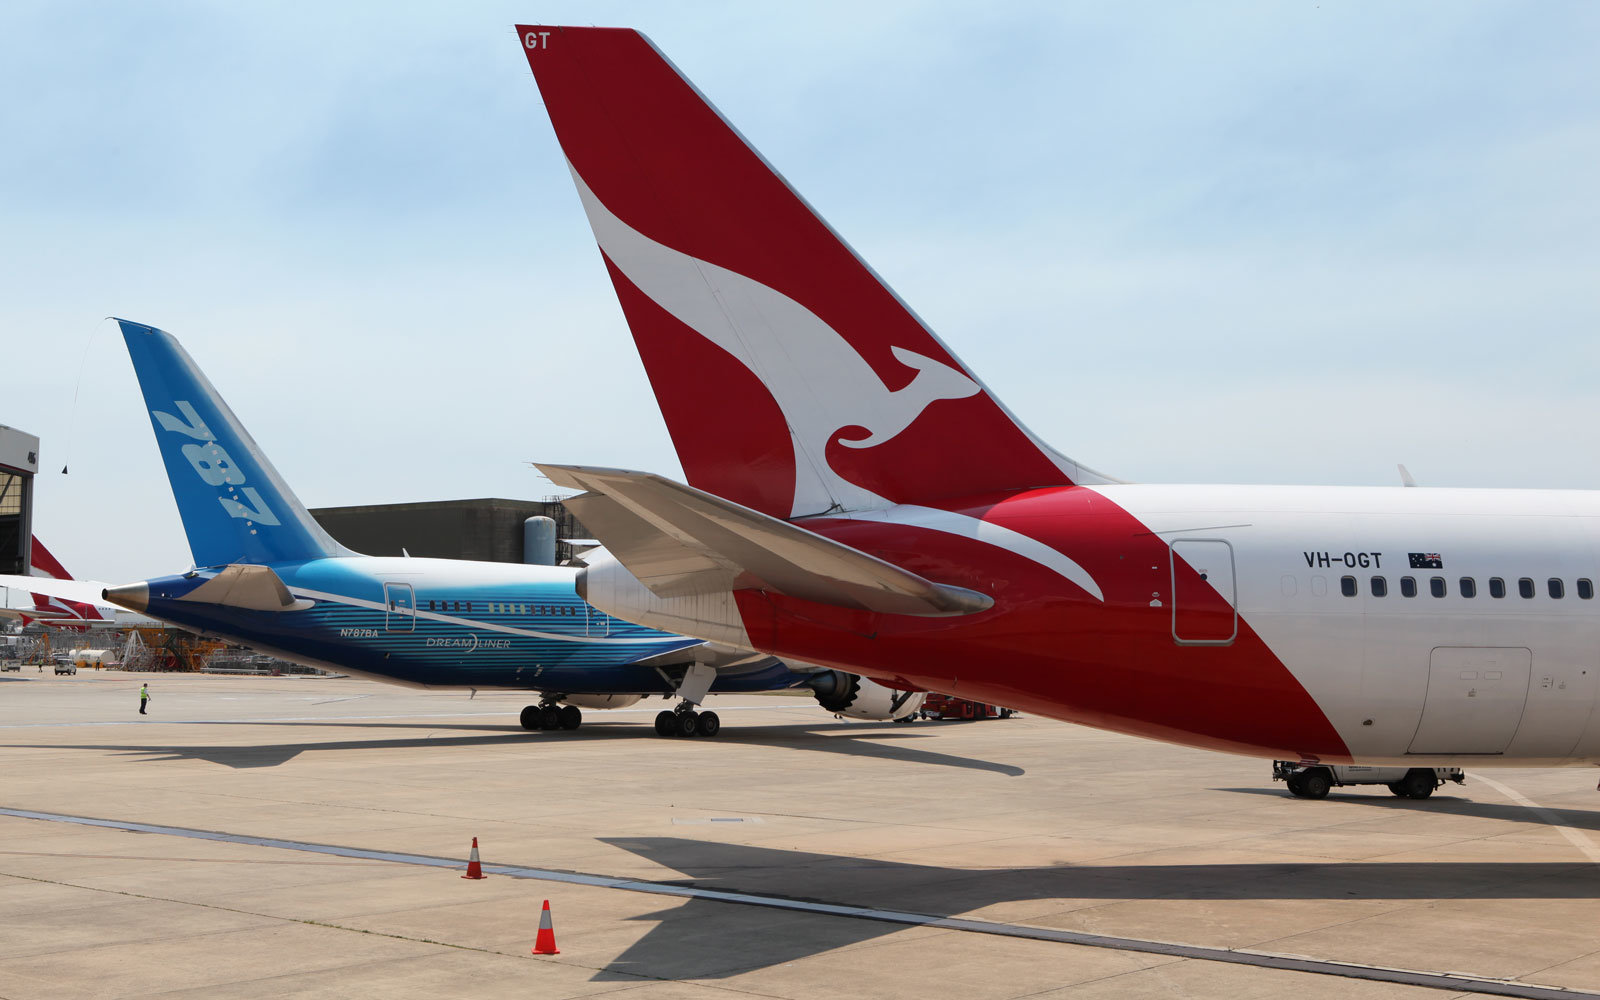 A 787 next to a Qantas aircraft.